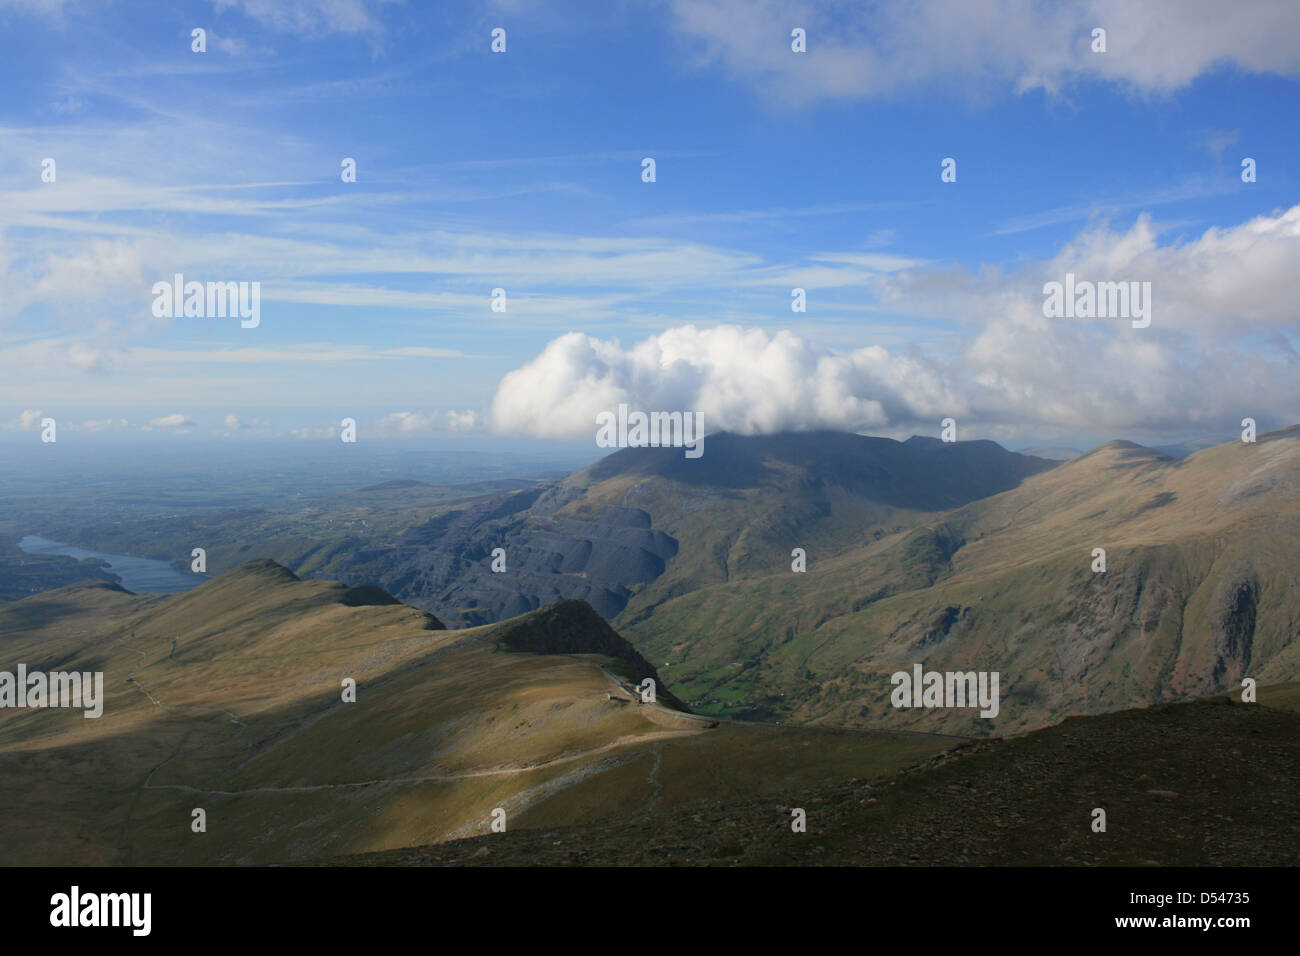 The route down from Snowdon as part of the National Three Peaks Challenge - Stock Image